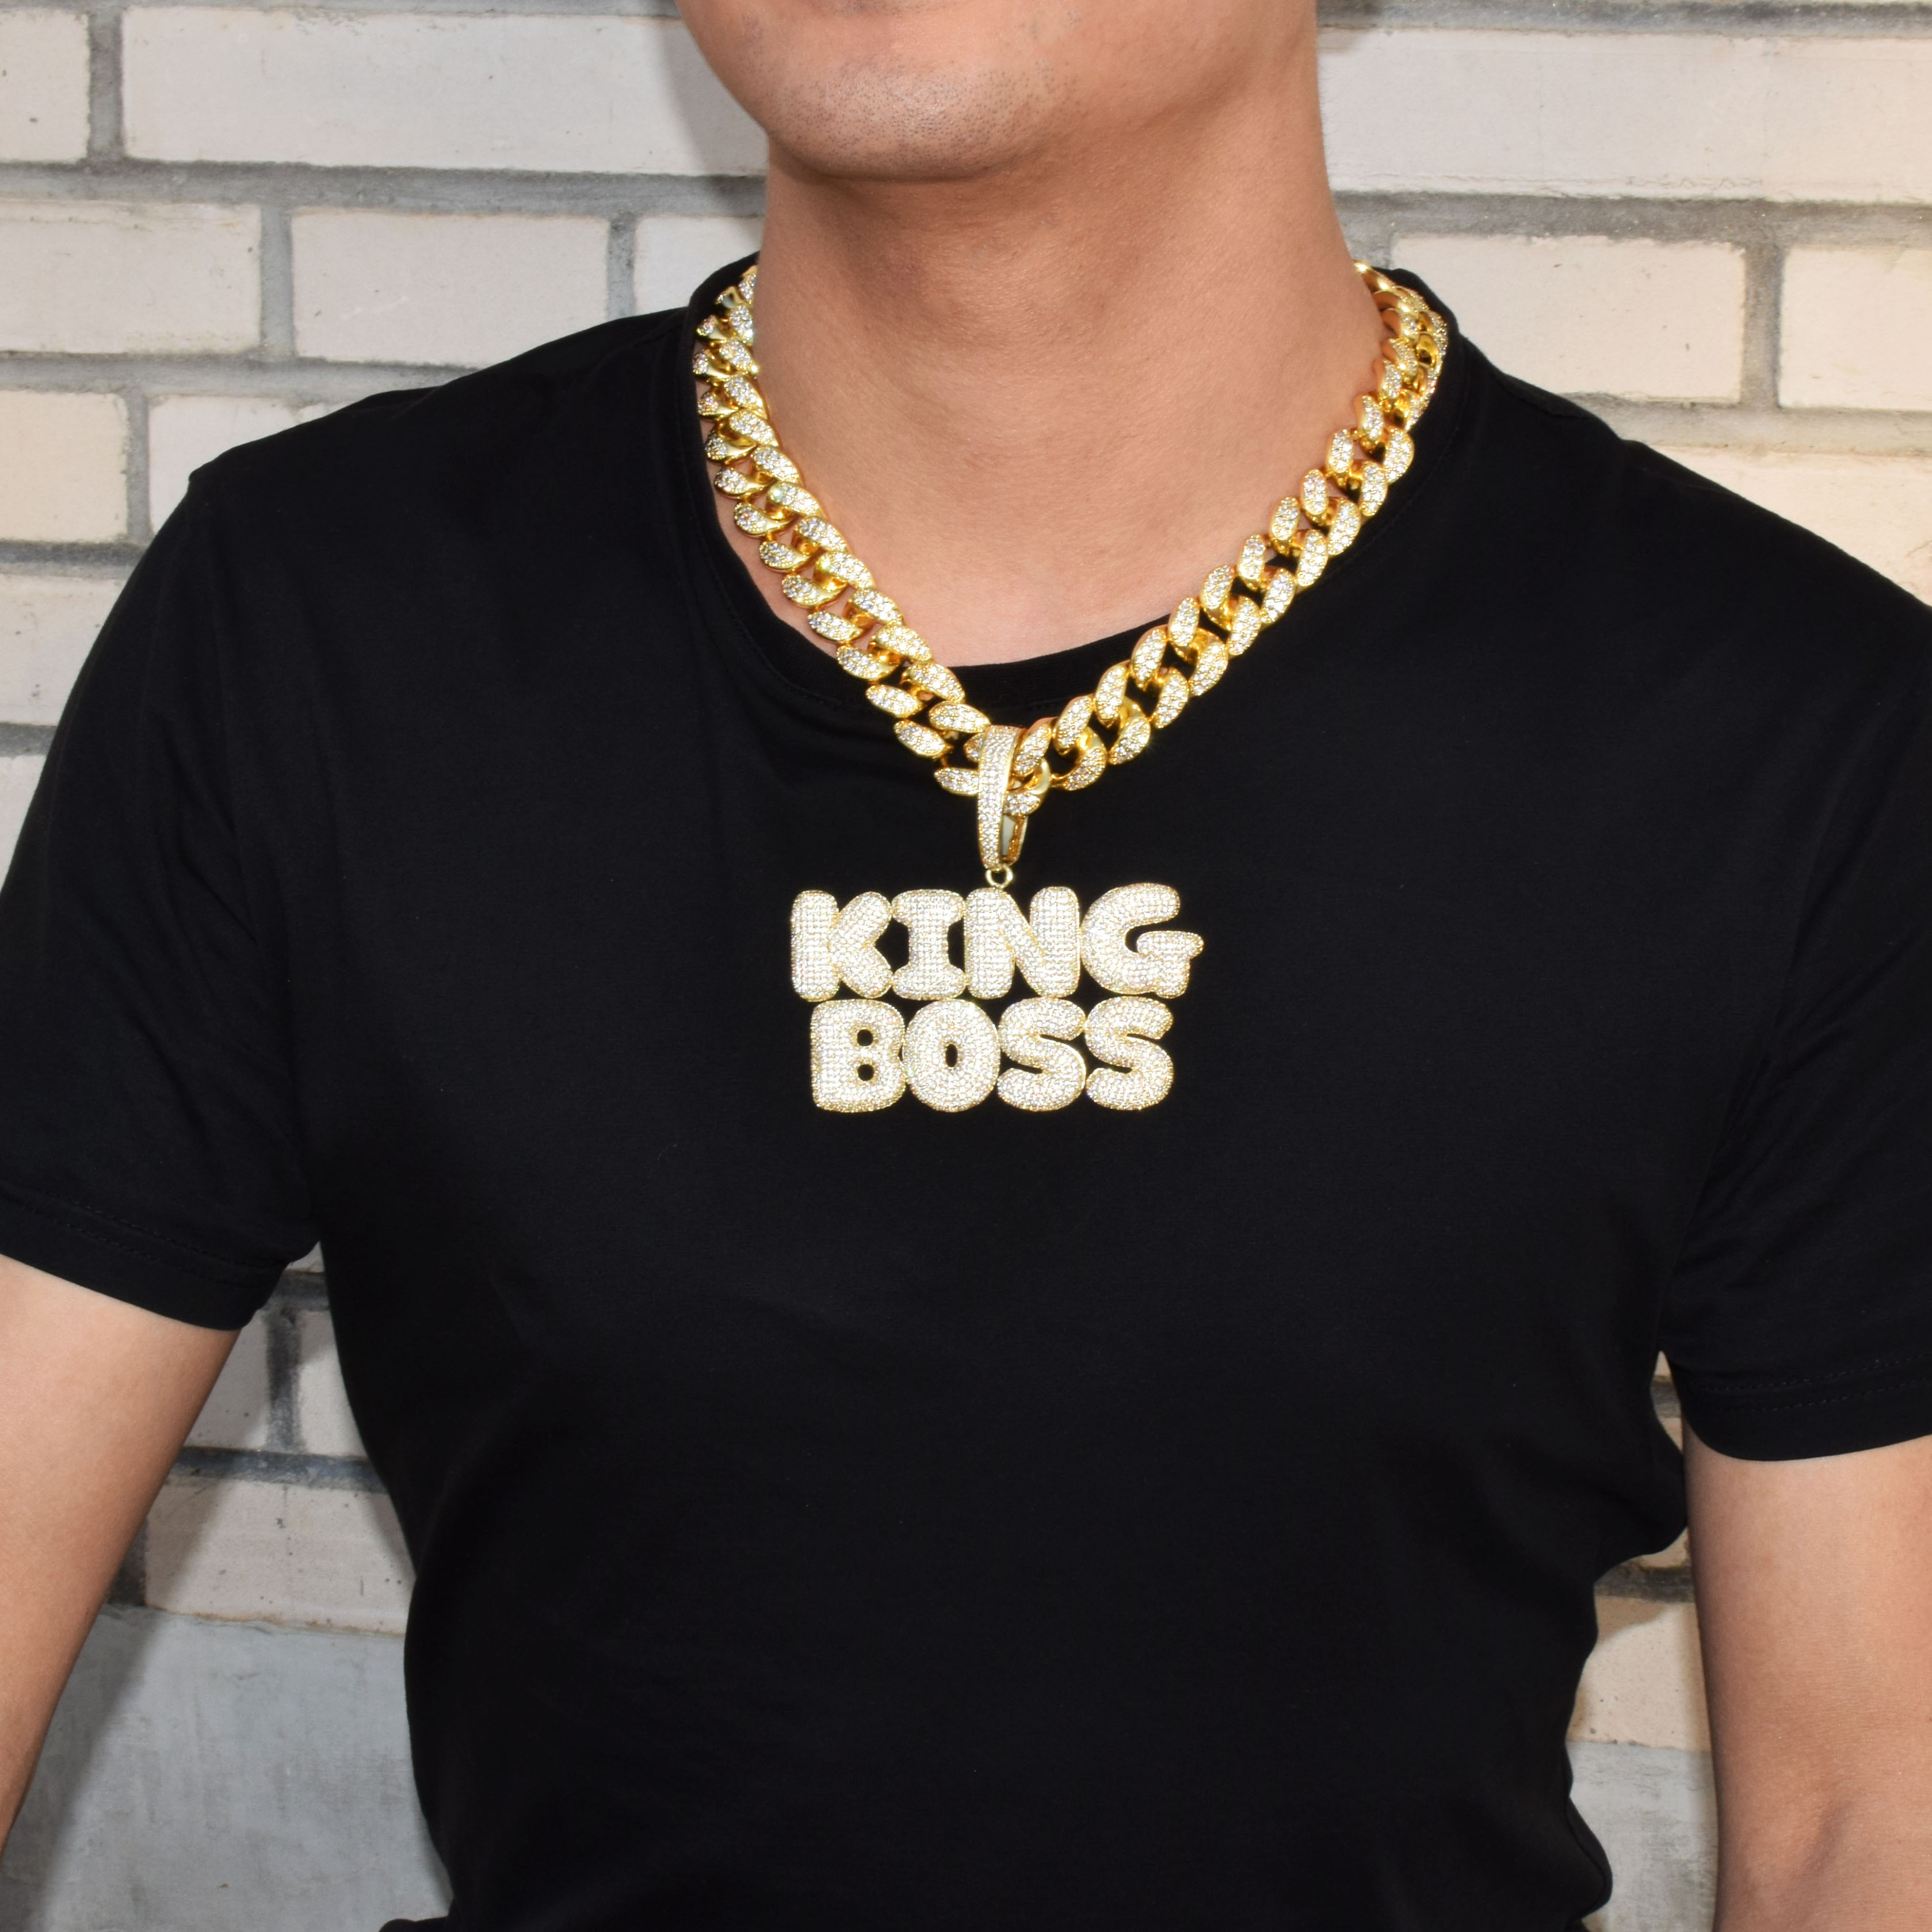 Image 2 - With 20MM Cuban Chain Custom Name Bubble Letters Chain Pendants Necklaces Men's Zircon Hip Hop Jewelry For Gift-in Chain Necklaces from Jewelry & Accessories